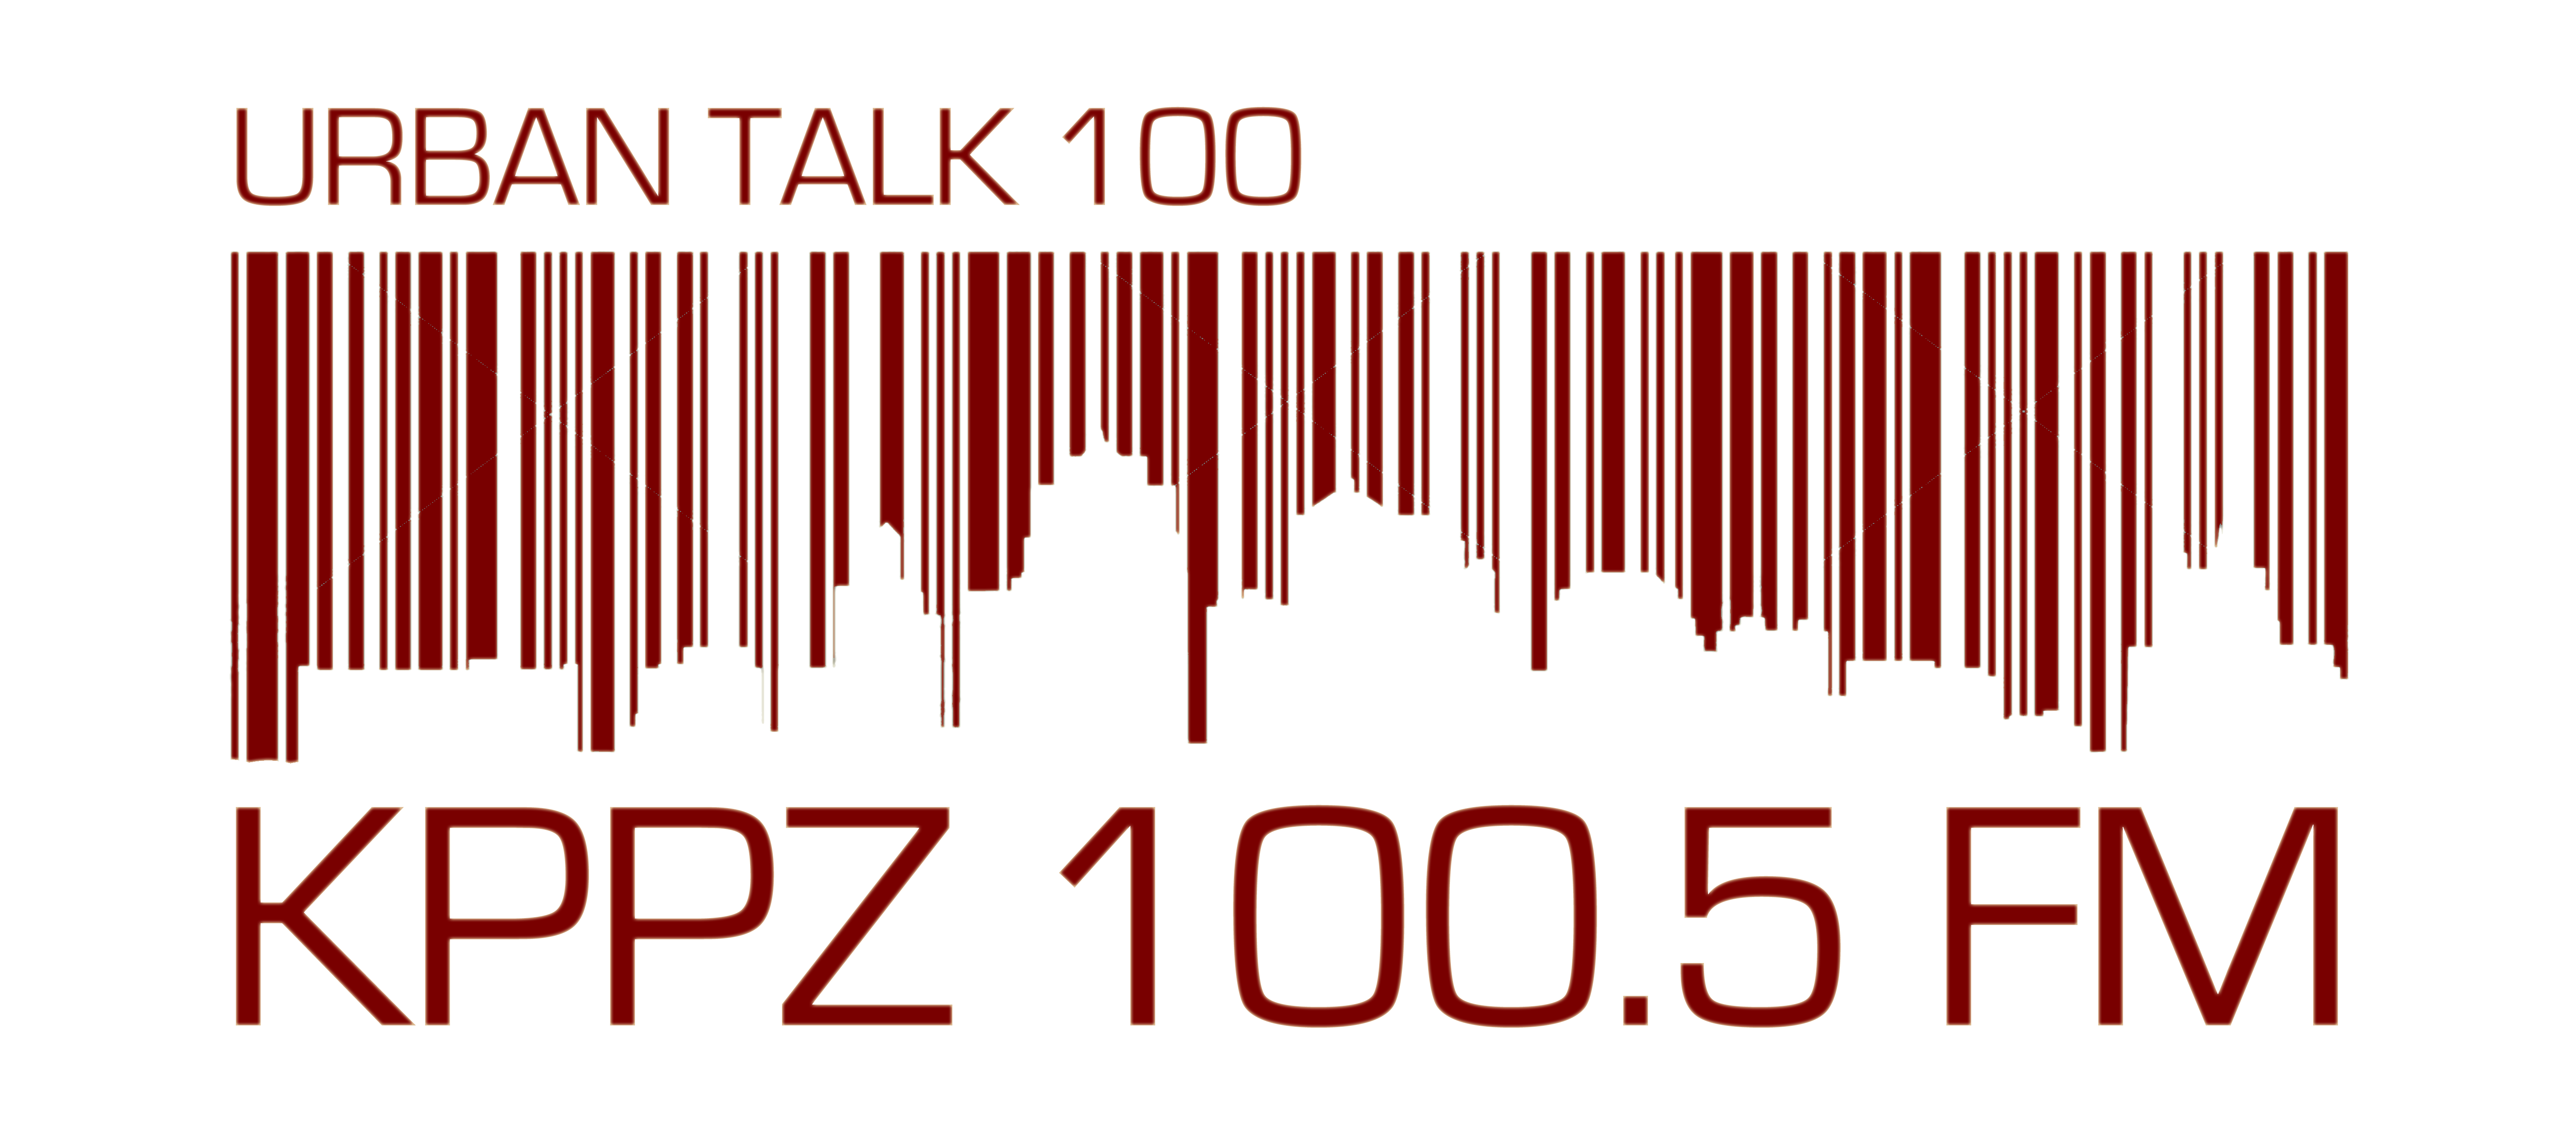 urban talk logo light 2